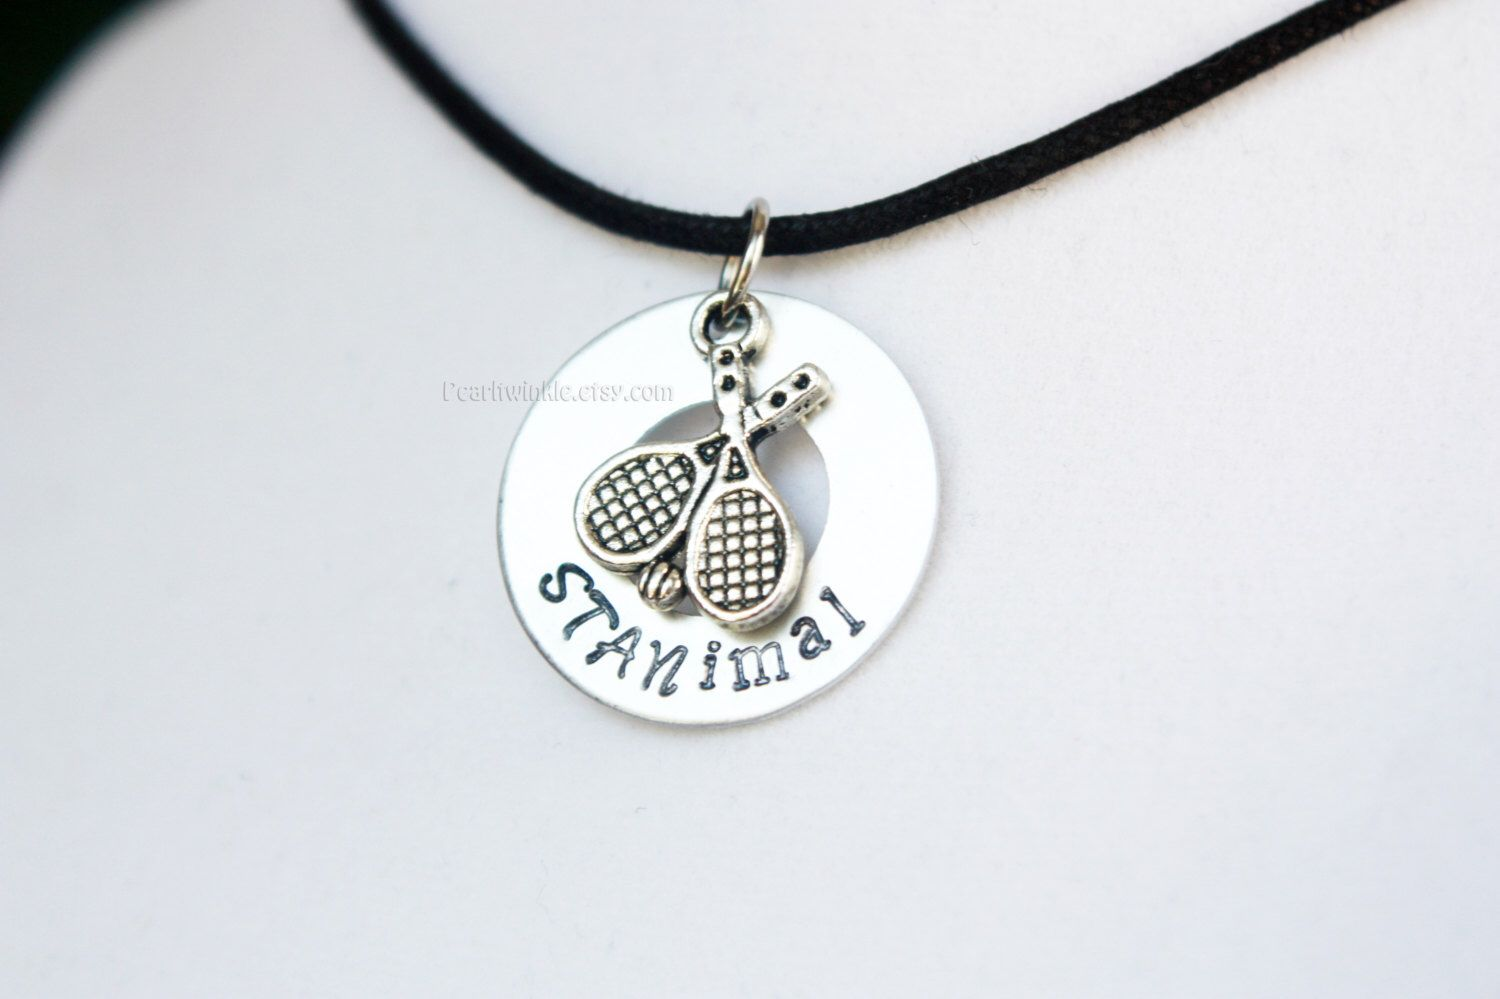 Stan wawrinka tennis pendant necklace stan the man stanimal stan wawrinka tennis pendant necklace stan the man stanimal tennis charm personalized tennis sports necklace tennis jewelry customized mozeypictures Choice Image